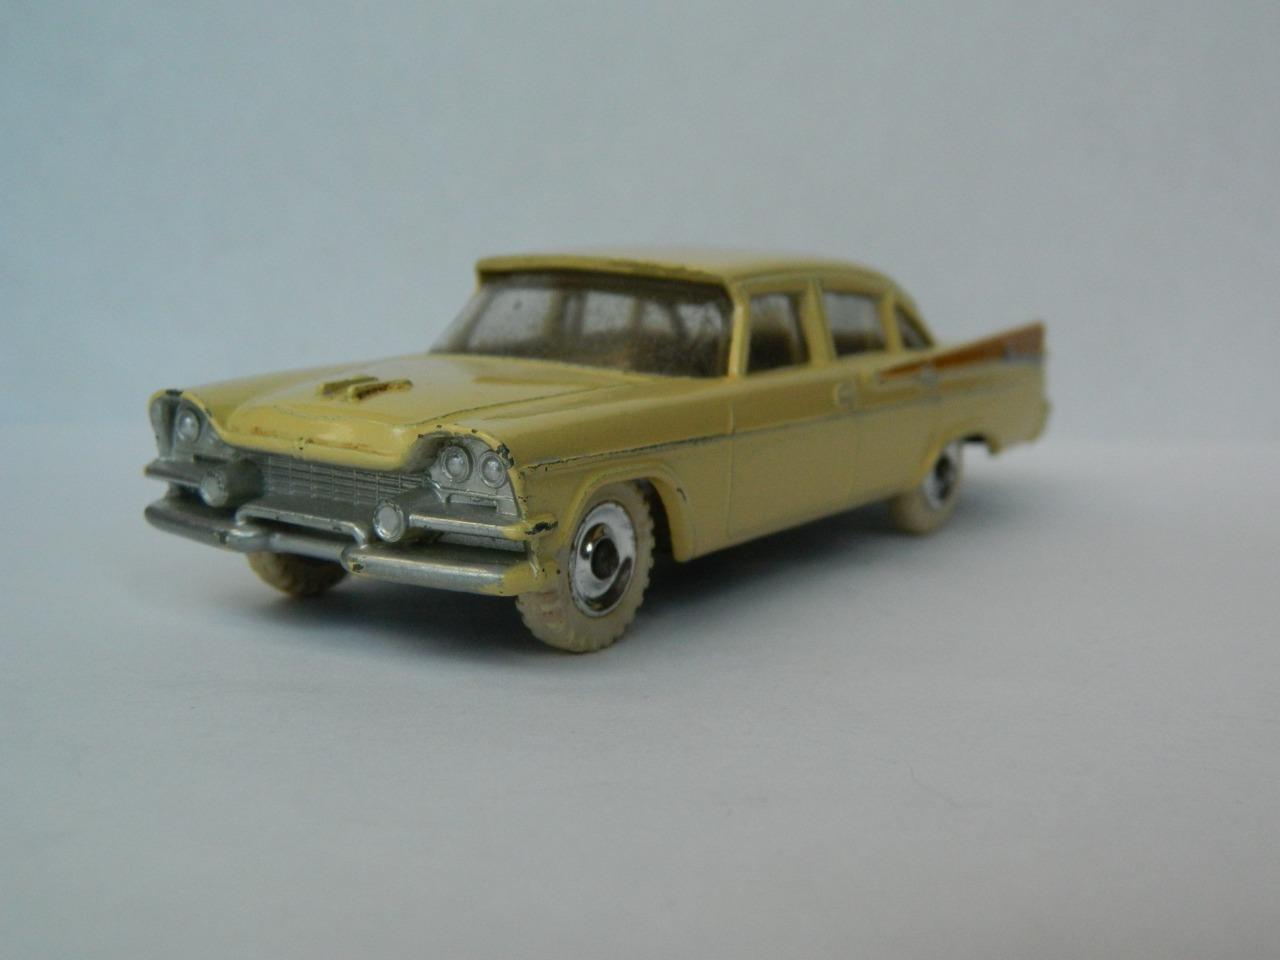 Dinky toys meccano vintage modele Cream & Tan Dodge Royal Sedan No. 191 1959-64